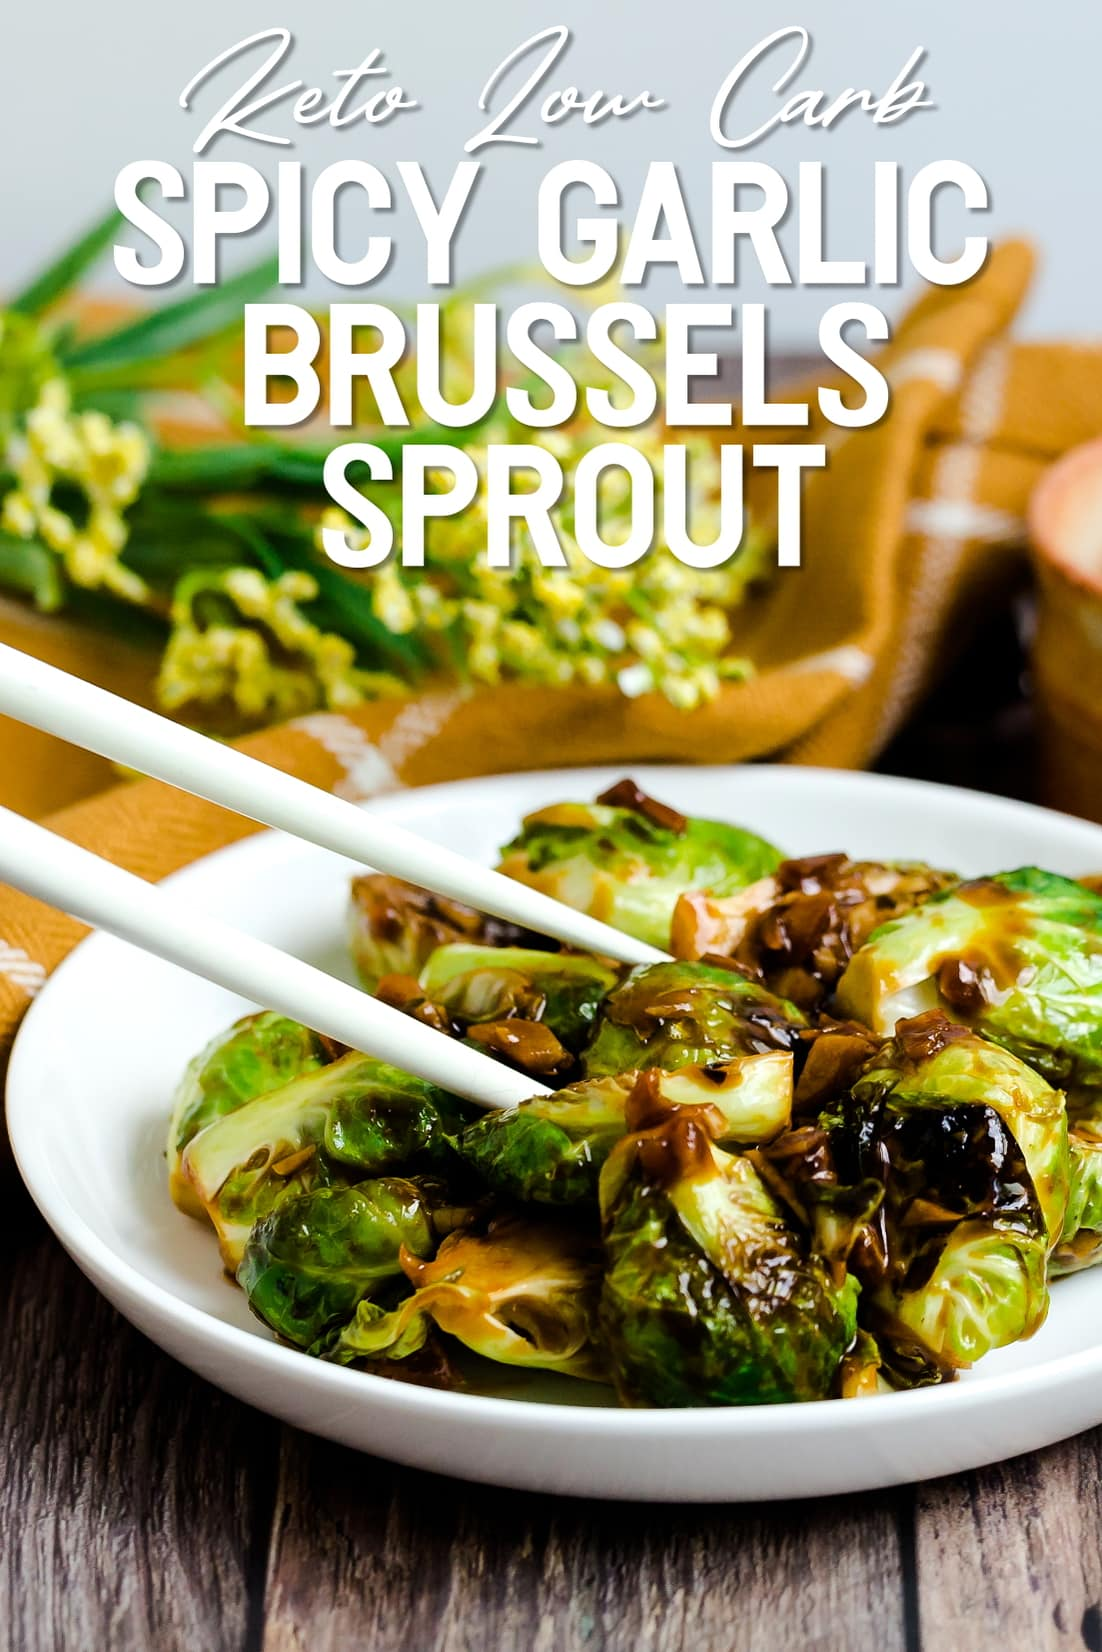 Spicy Garlic Sauteed Brussels Sprout with chopsticks side shot